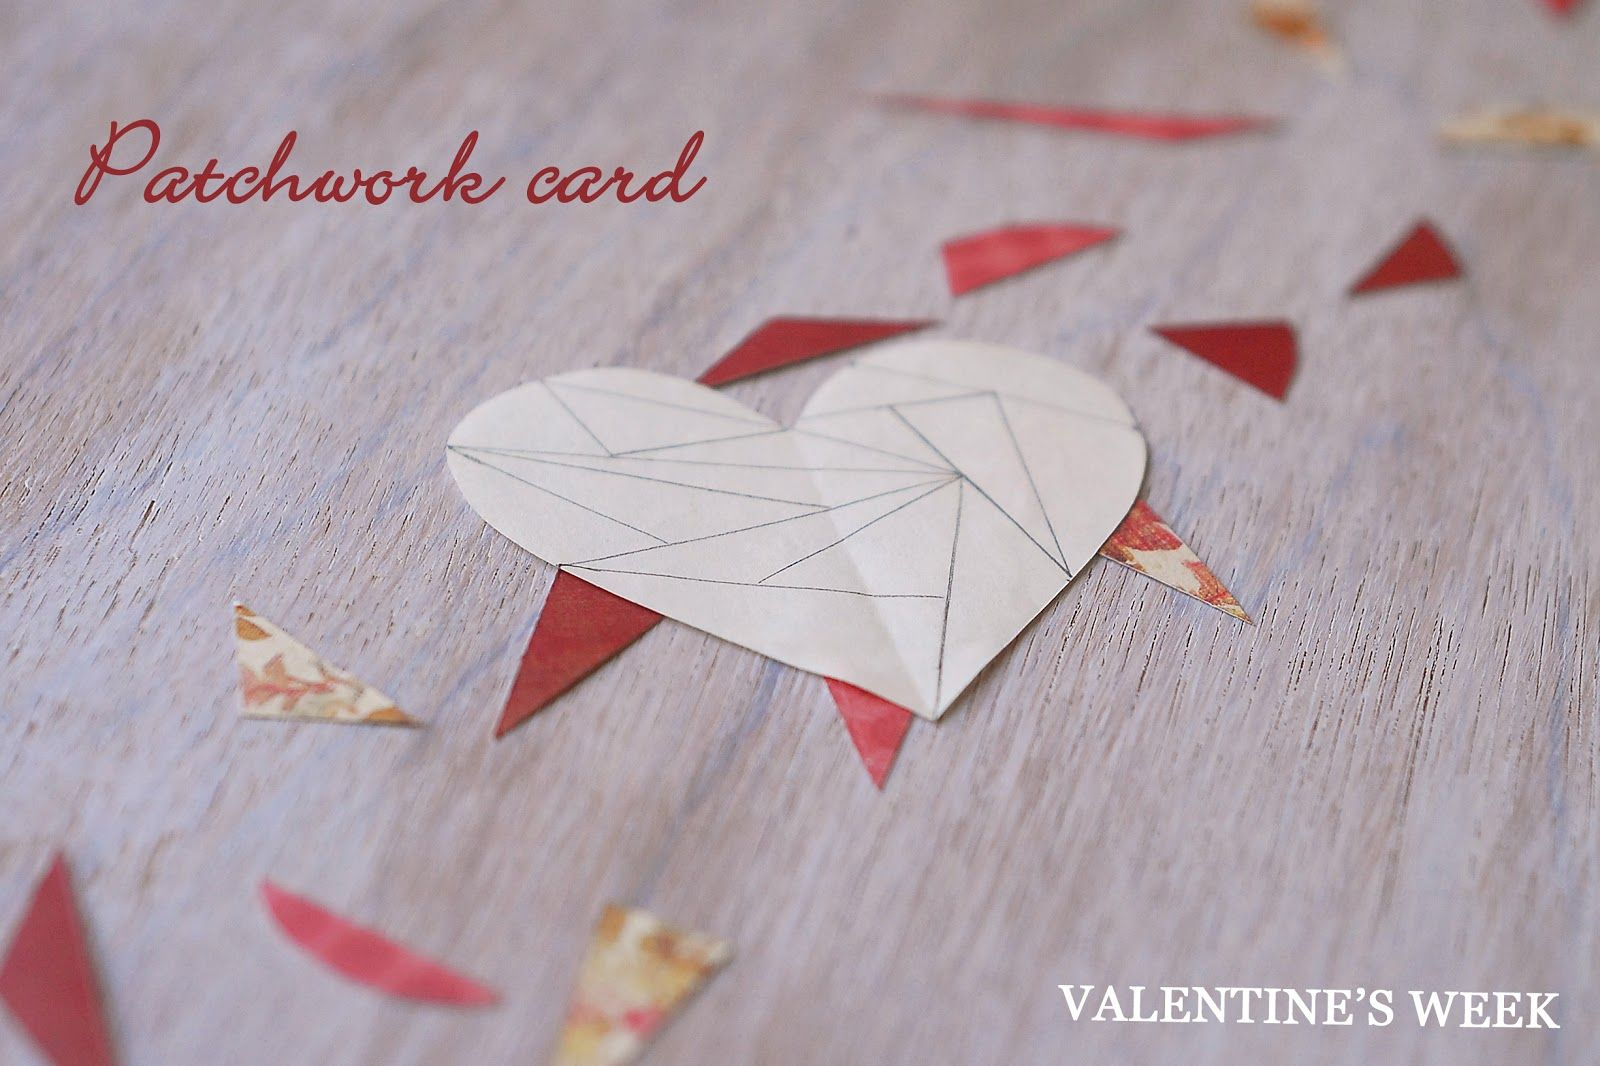 PAPER PATCHWORK VALENTINE'S DAY CARD   SAS does ...: PAPER PATCHWORK VALENTINE'S DAY CARD